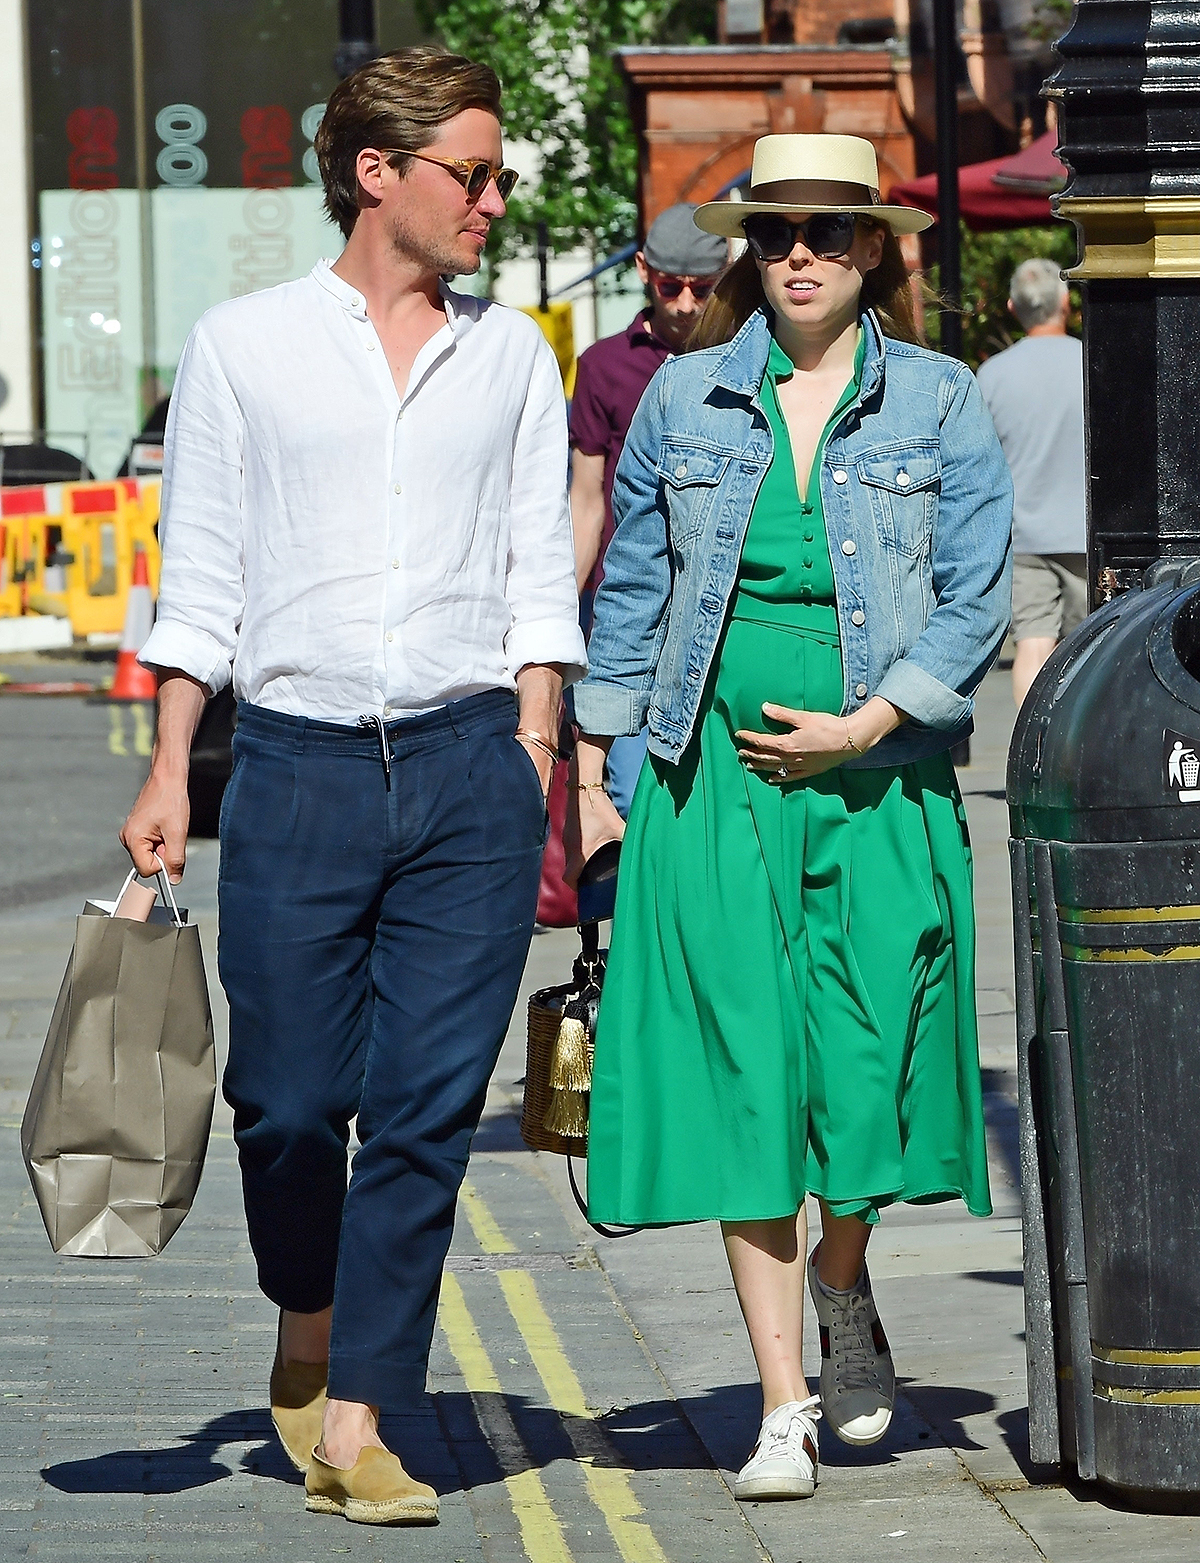 Pregnant Princess Beatrice looking elegant in Green dress and Denim jacket while out with husband Edoardo Mapelli Mozzi in Sunny London